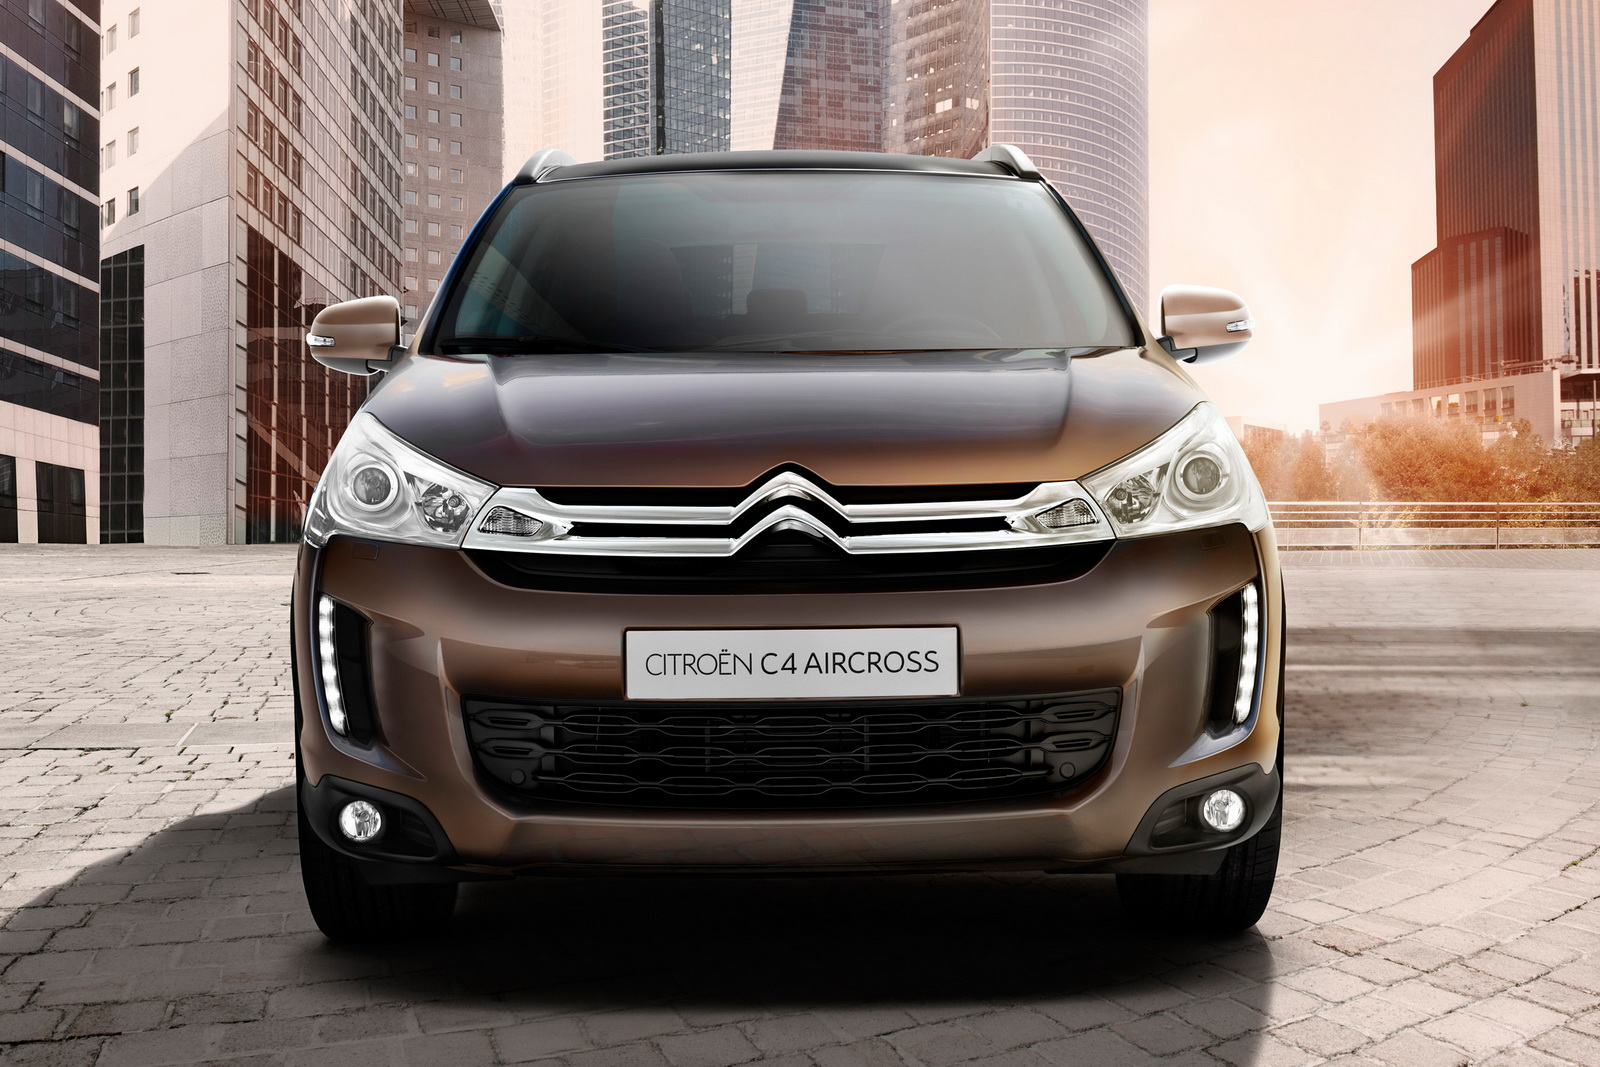 Citroen C4 Aircross 2 PSA Peugeot Citroen Group Wrapped off Uniforms of Citroen C4 Aircross and Peugeot 4008